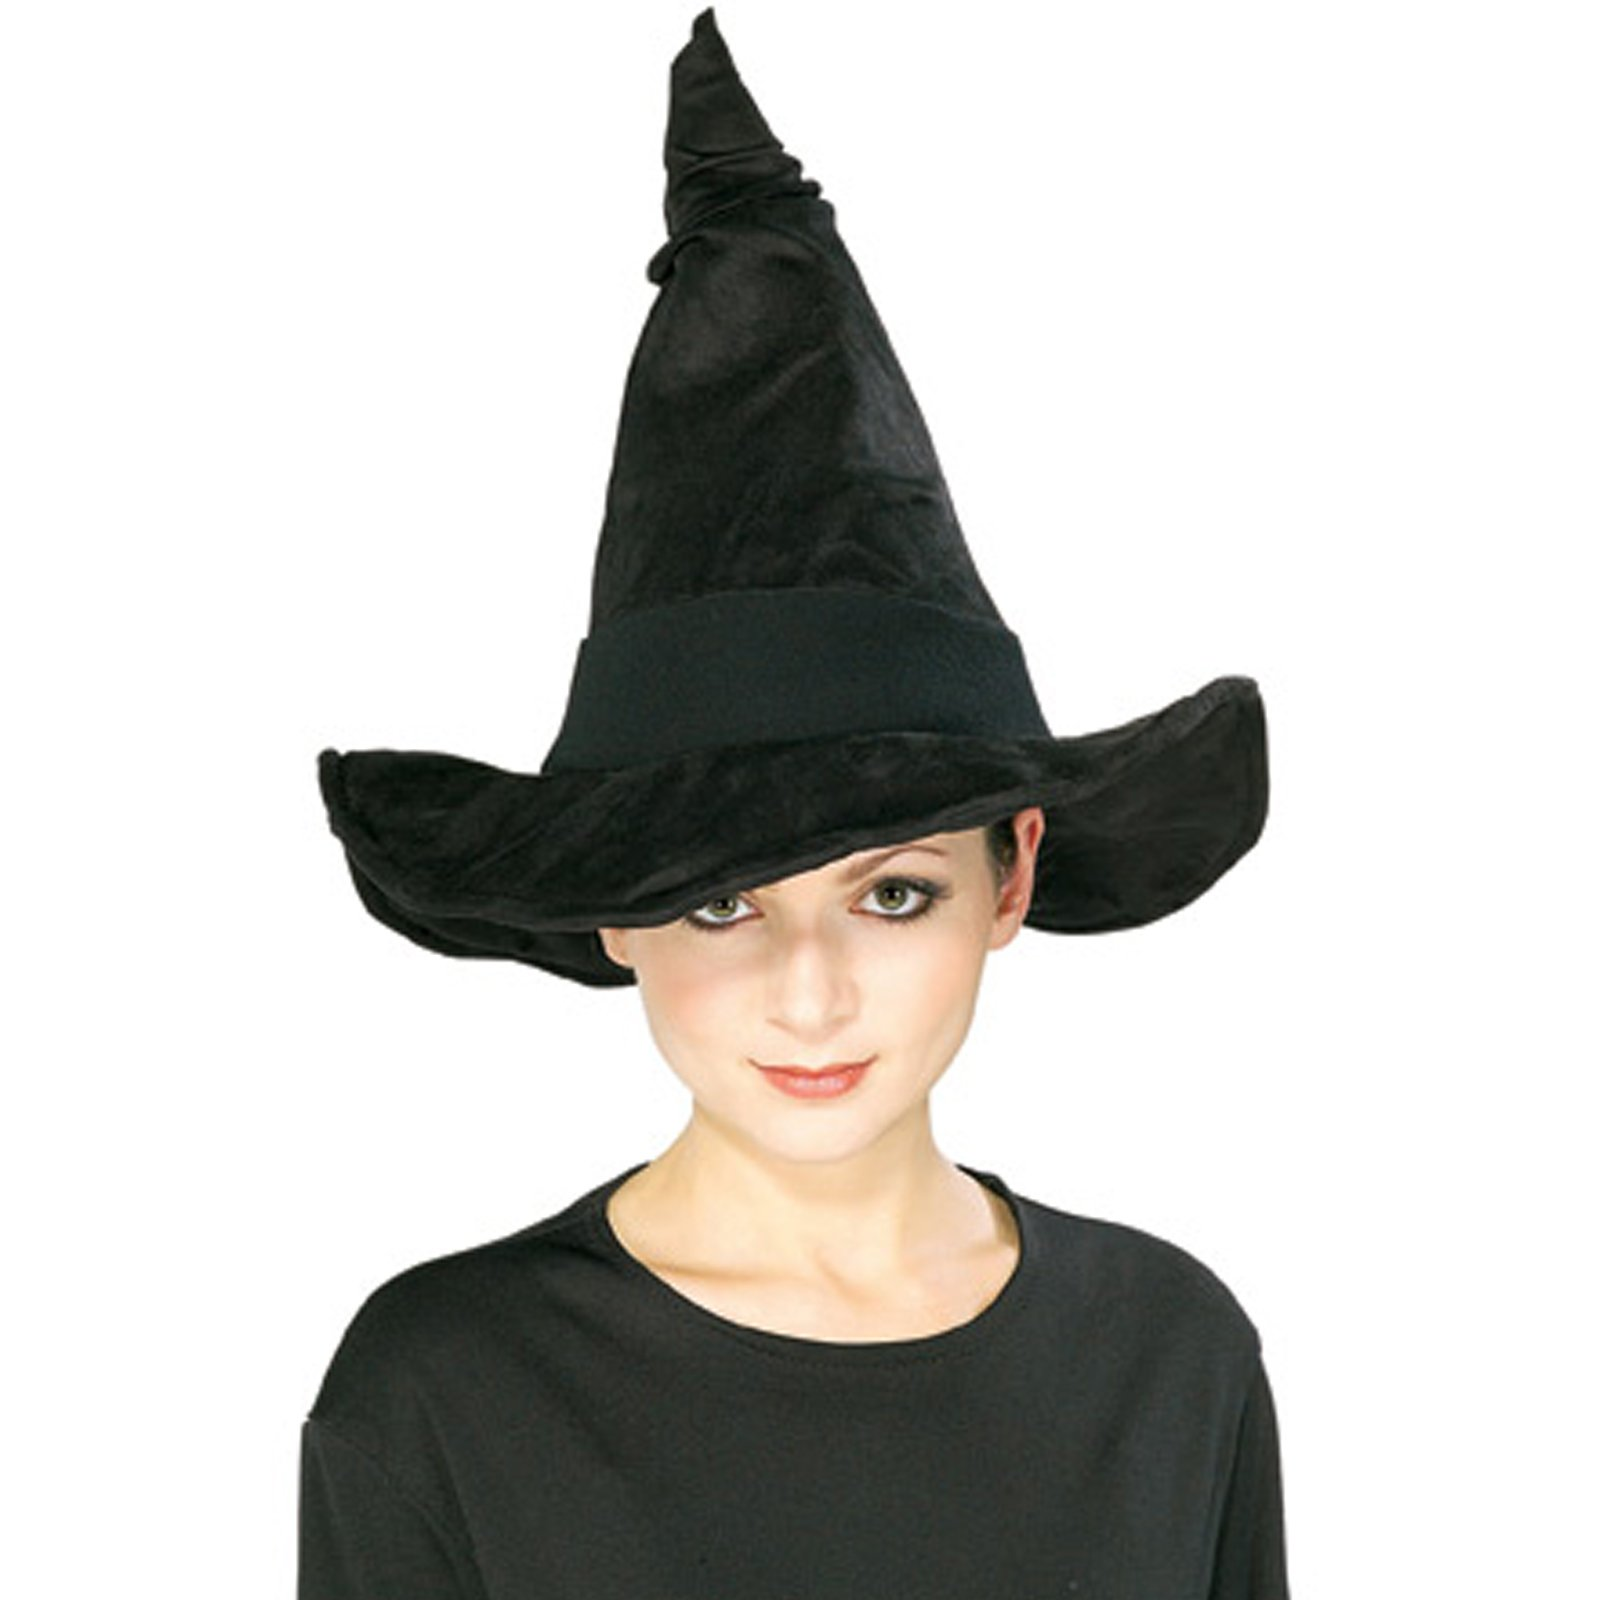 Harry Potter & The Half-Blood Prince McGonagall's Hat